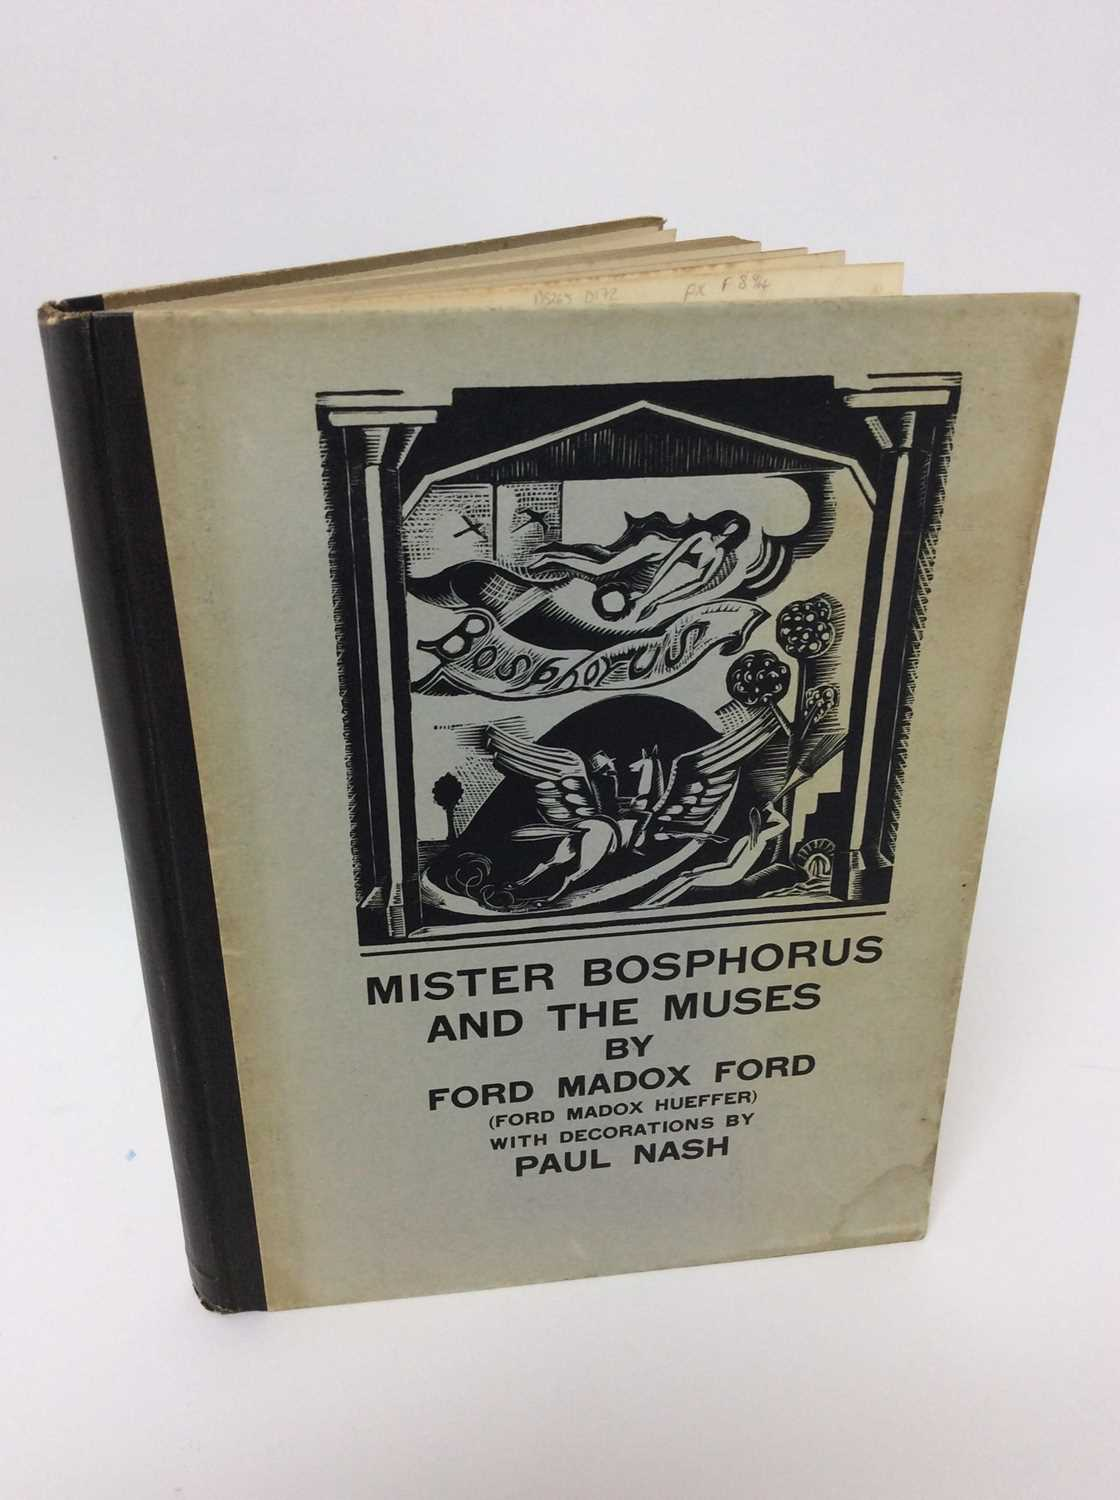 Lot 38 - Ford Madox Ford - Mister Bosphorus and the Muses, 1st edition